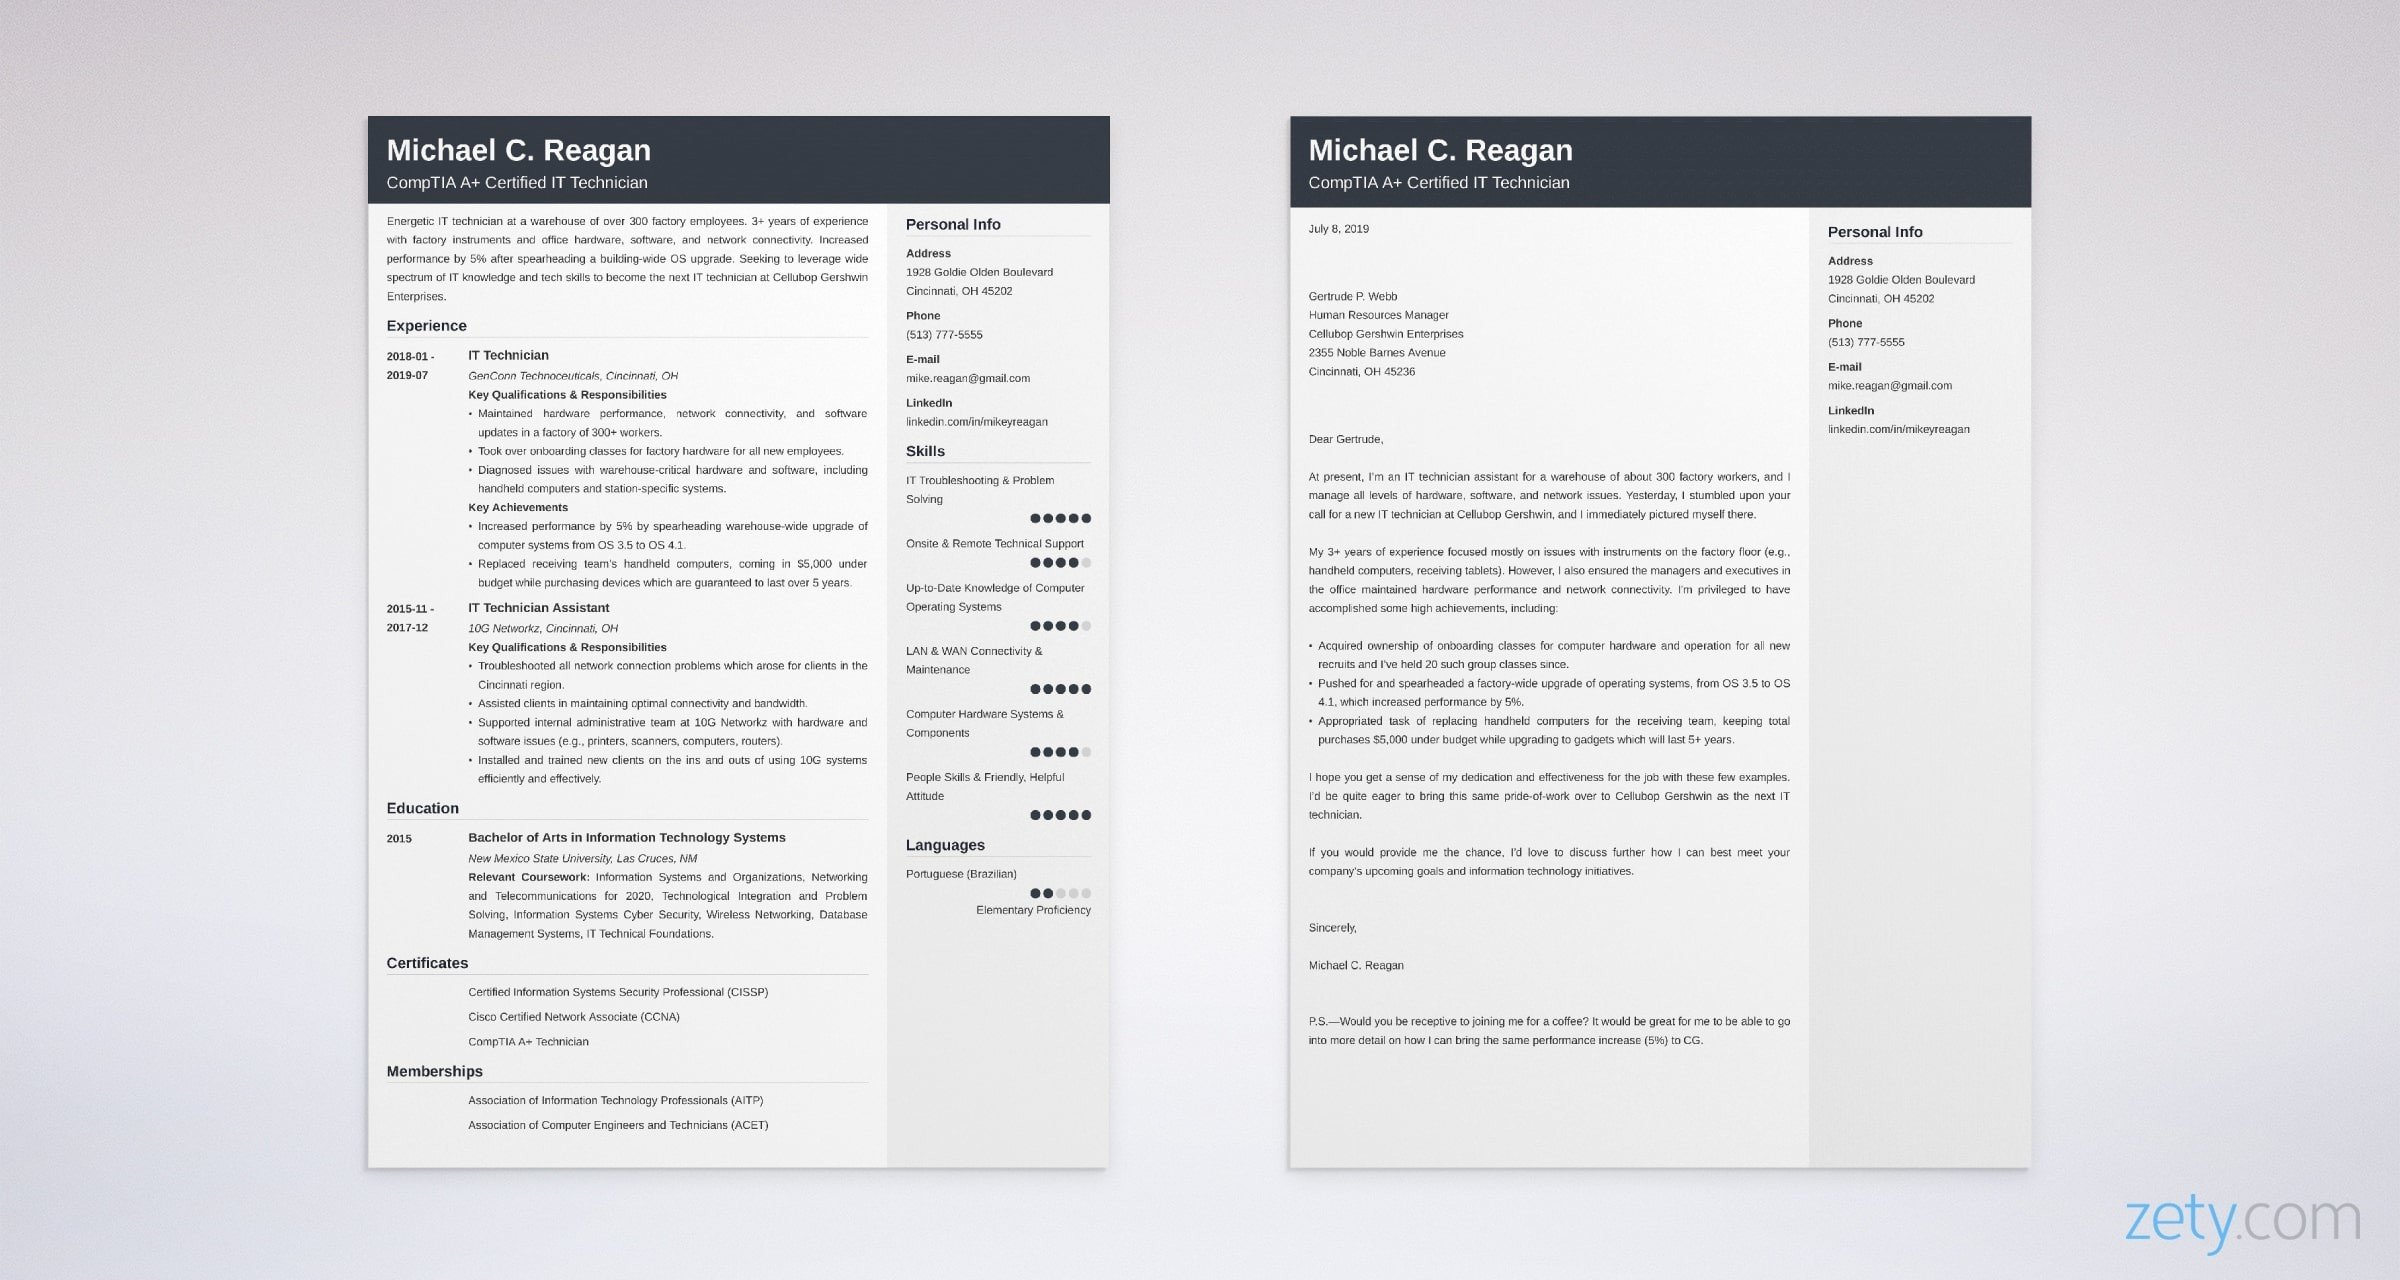 IT Technician Cover Letter: Sample & Guide [20+ IT Tech Job Tips]